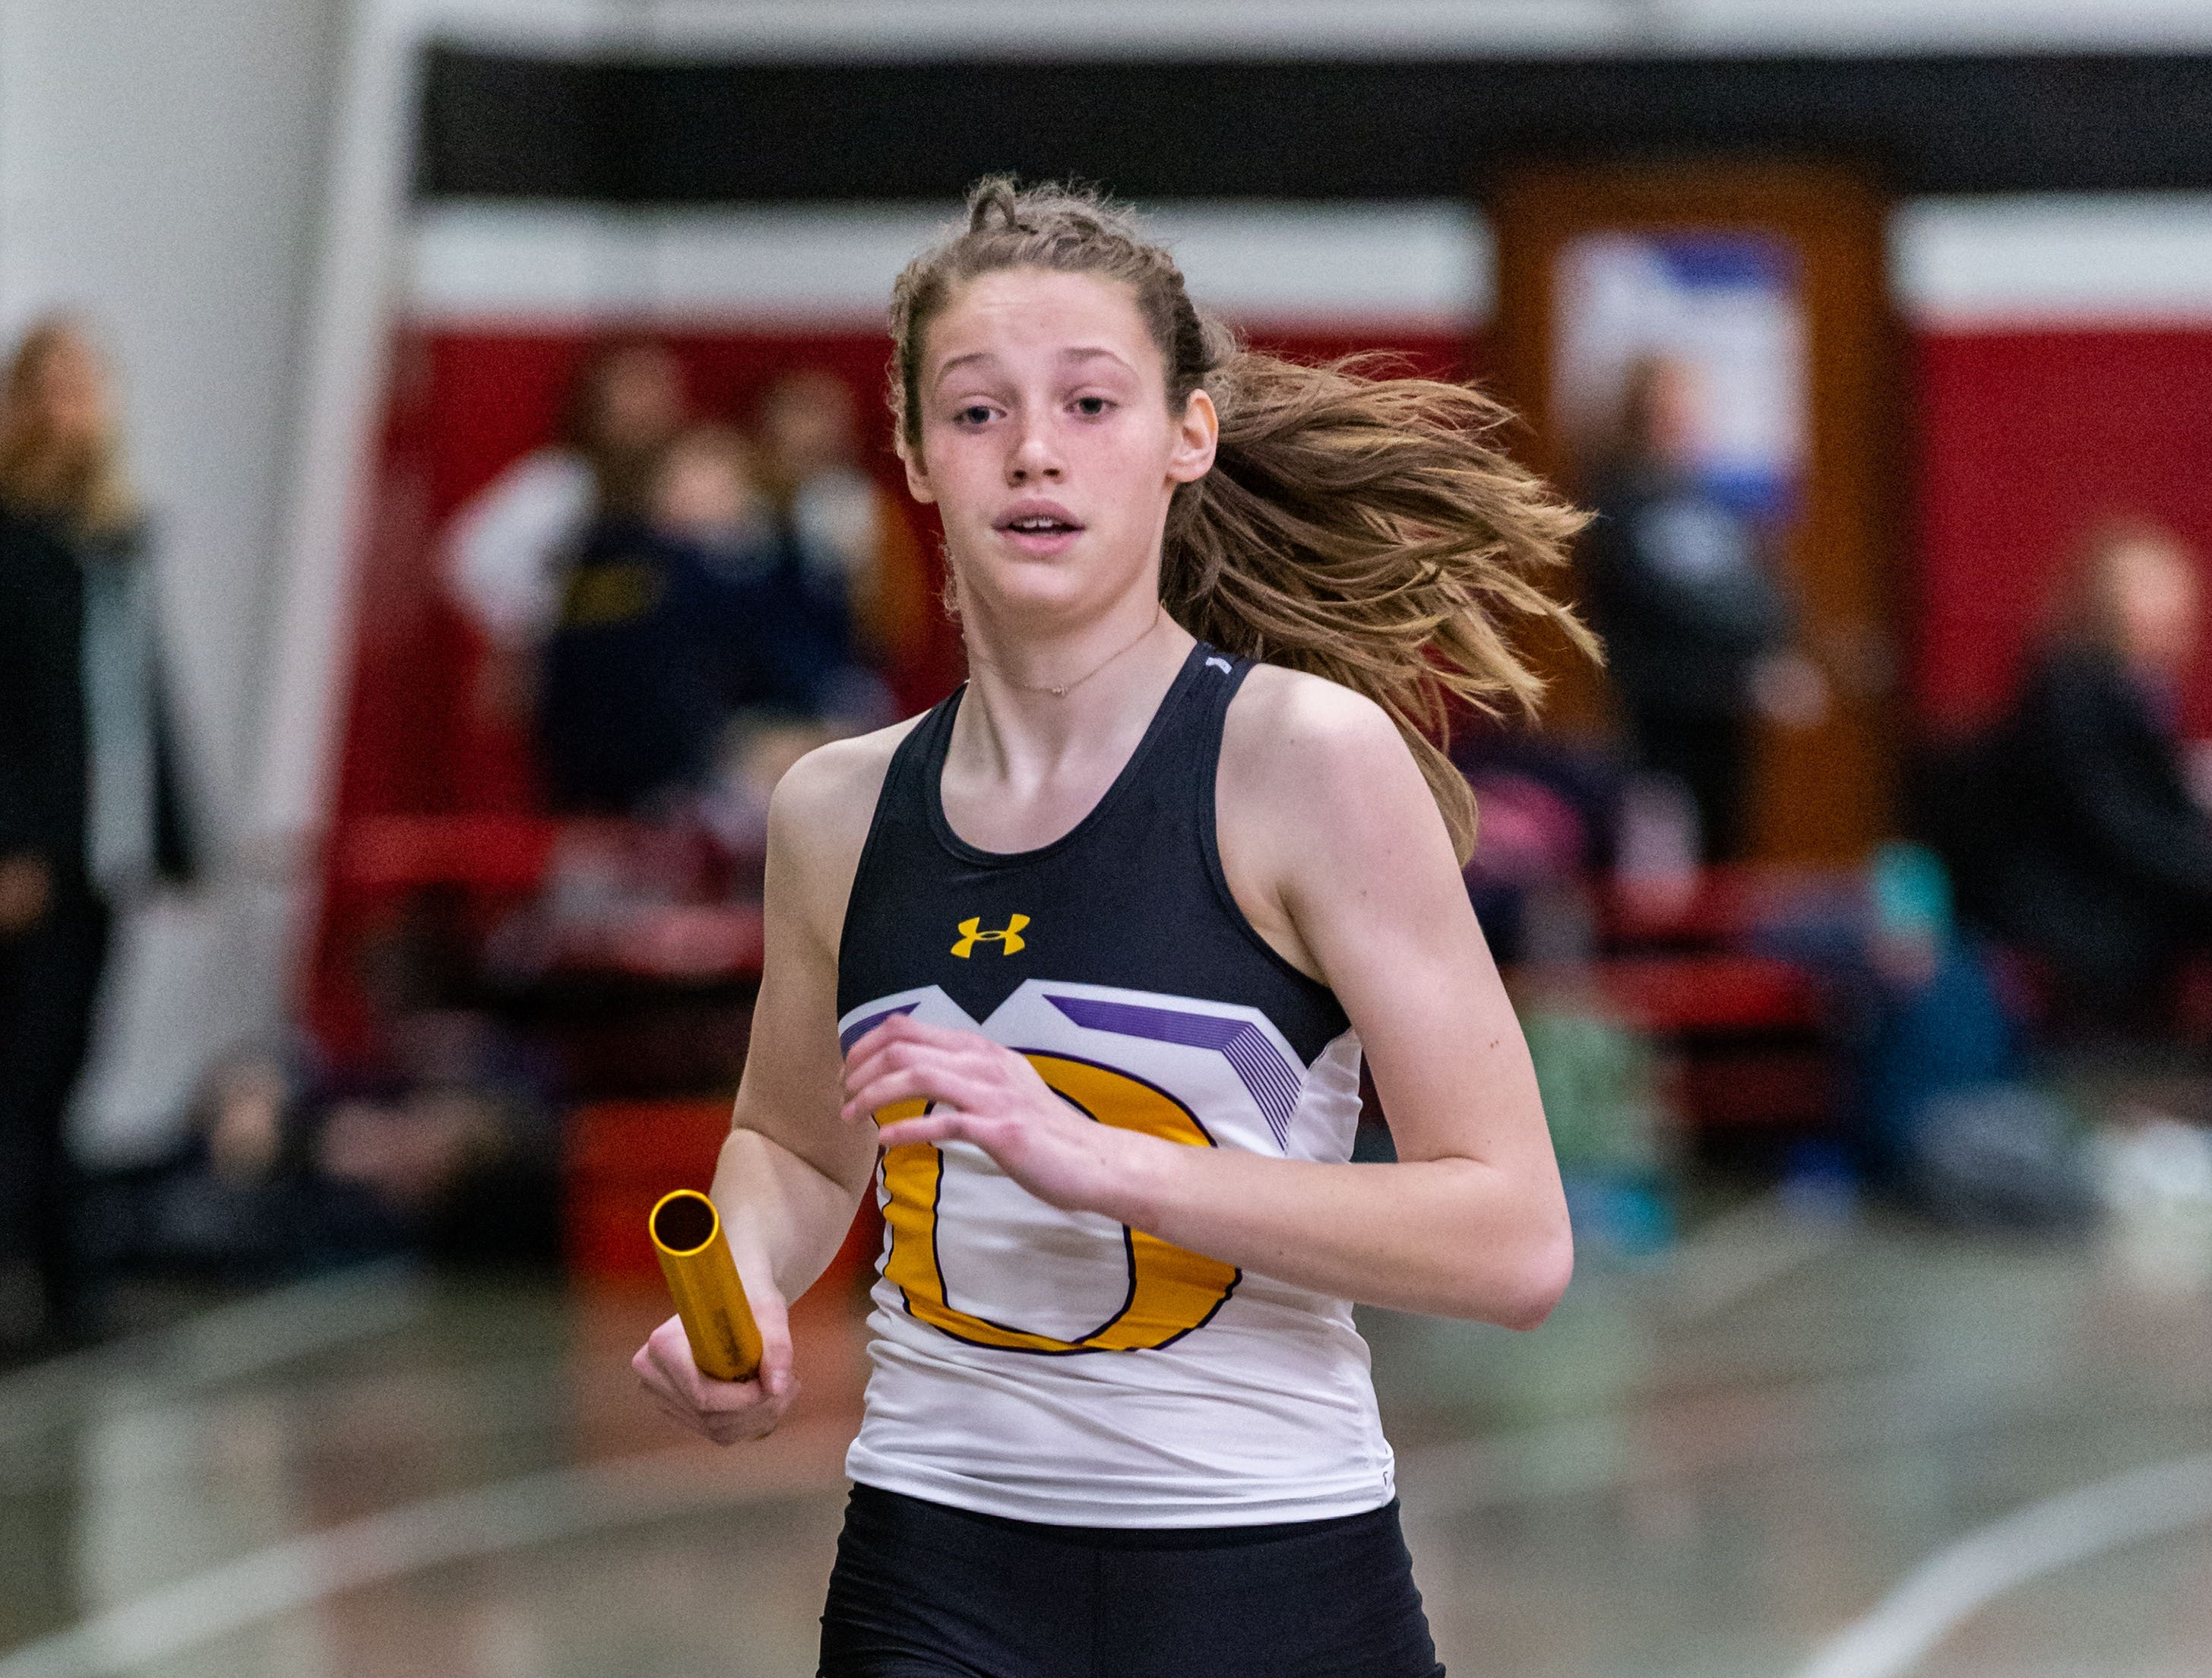 Oconomowoc's Megan Frosch competes in the 4x440 yard relay at the Peter Rempe Cardinal Relays hosted by Waukesha South on Thursday, March 21, 2019.